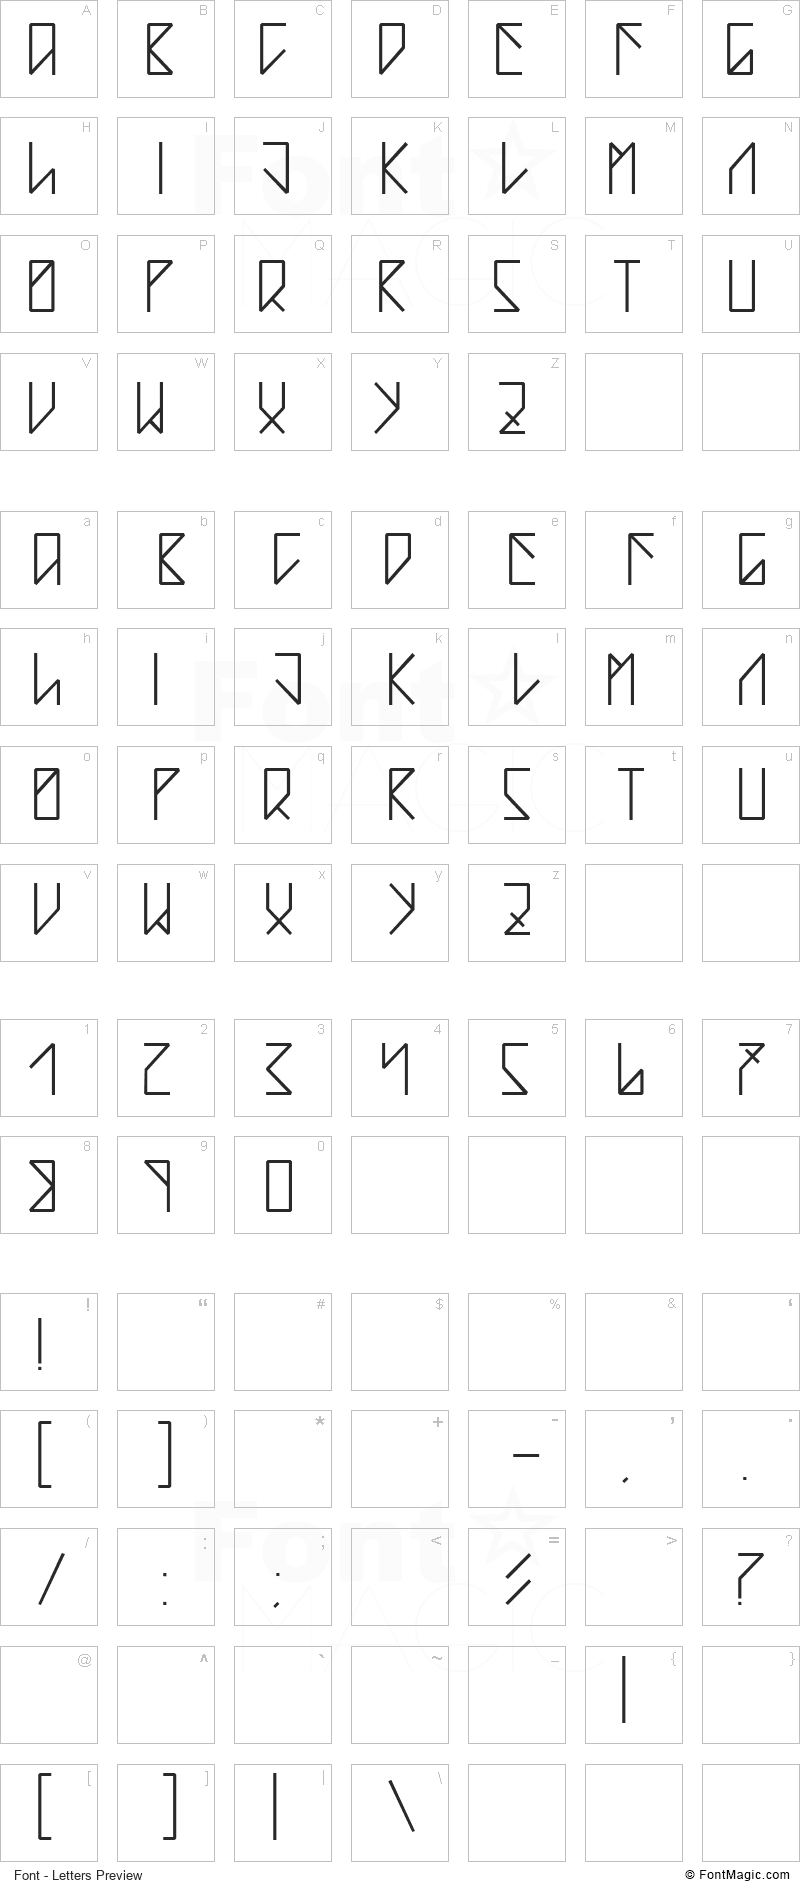 Teardrop Font - All Latters Preview Chart